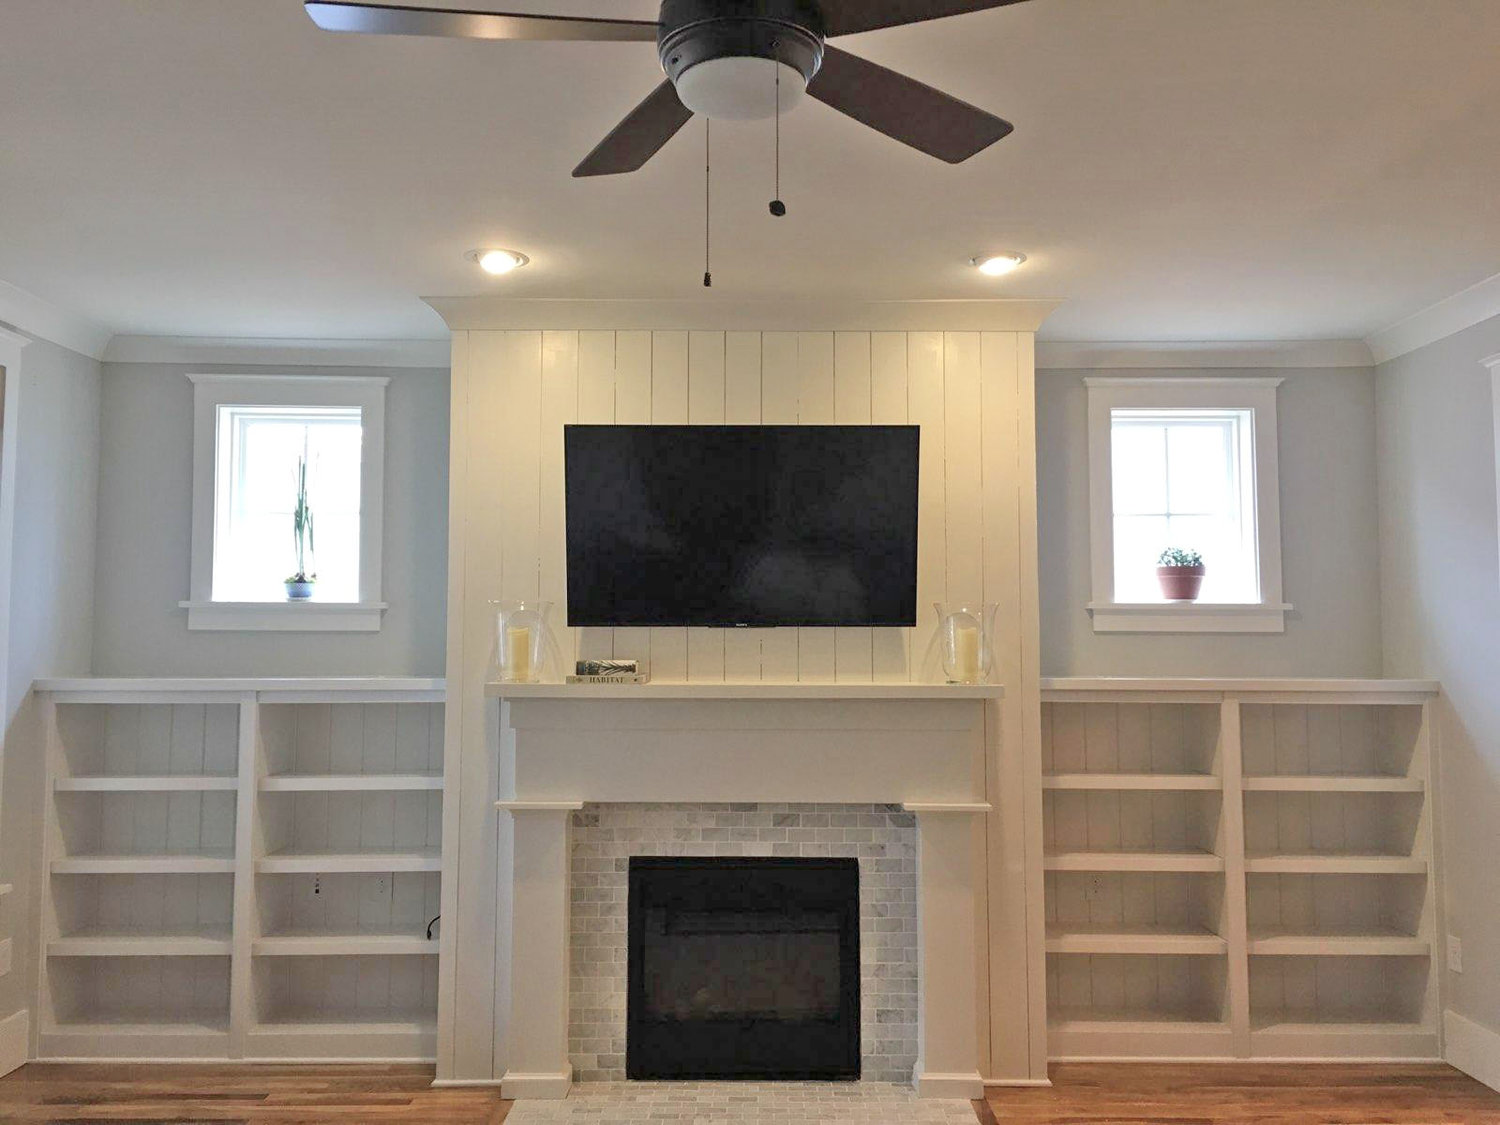 Fireplace Bookcases with Adjustable Shelves, Shiplap Backer and Countertops